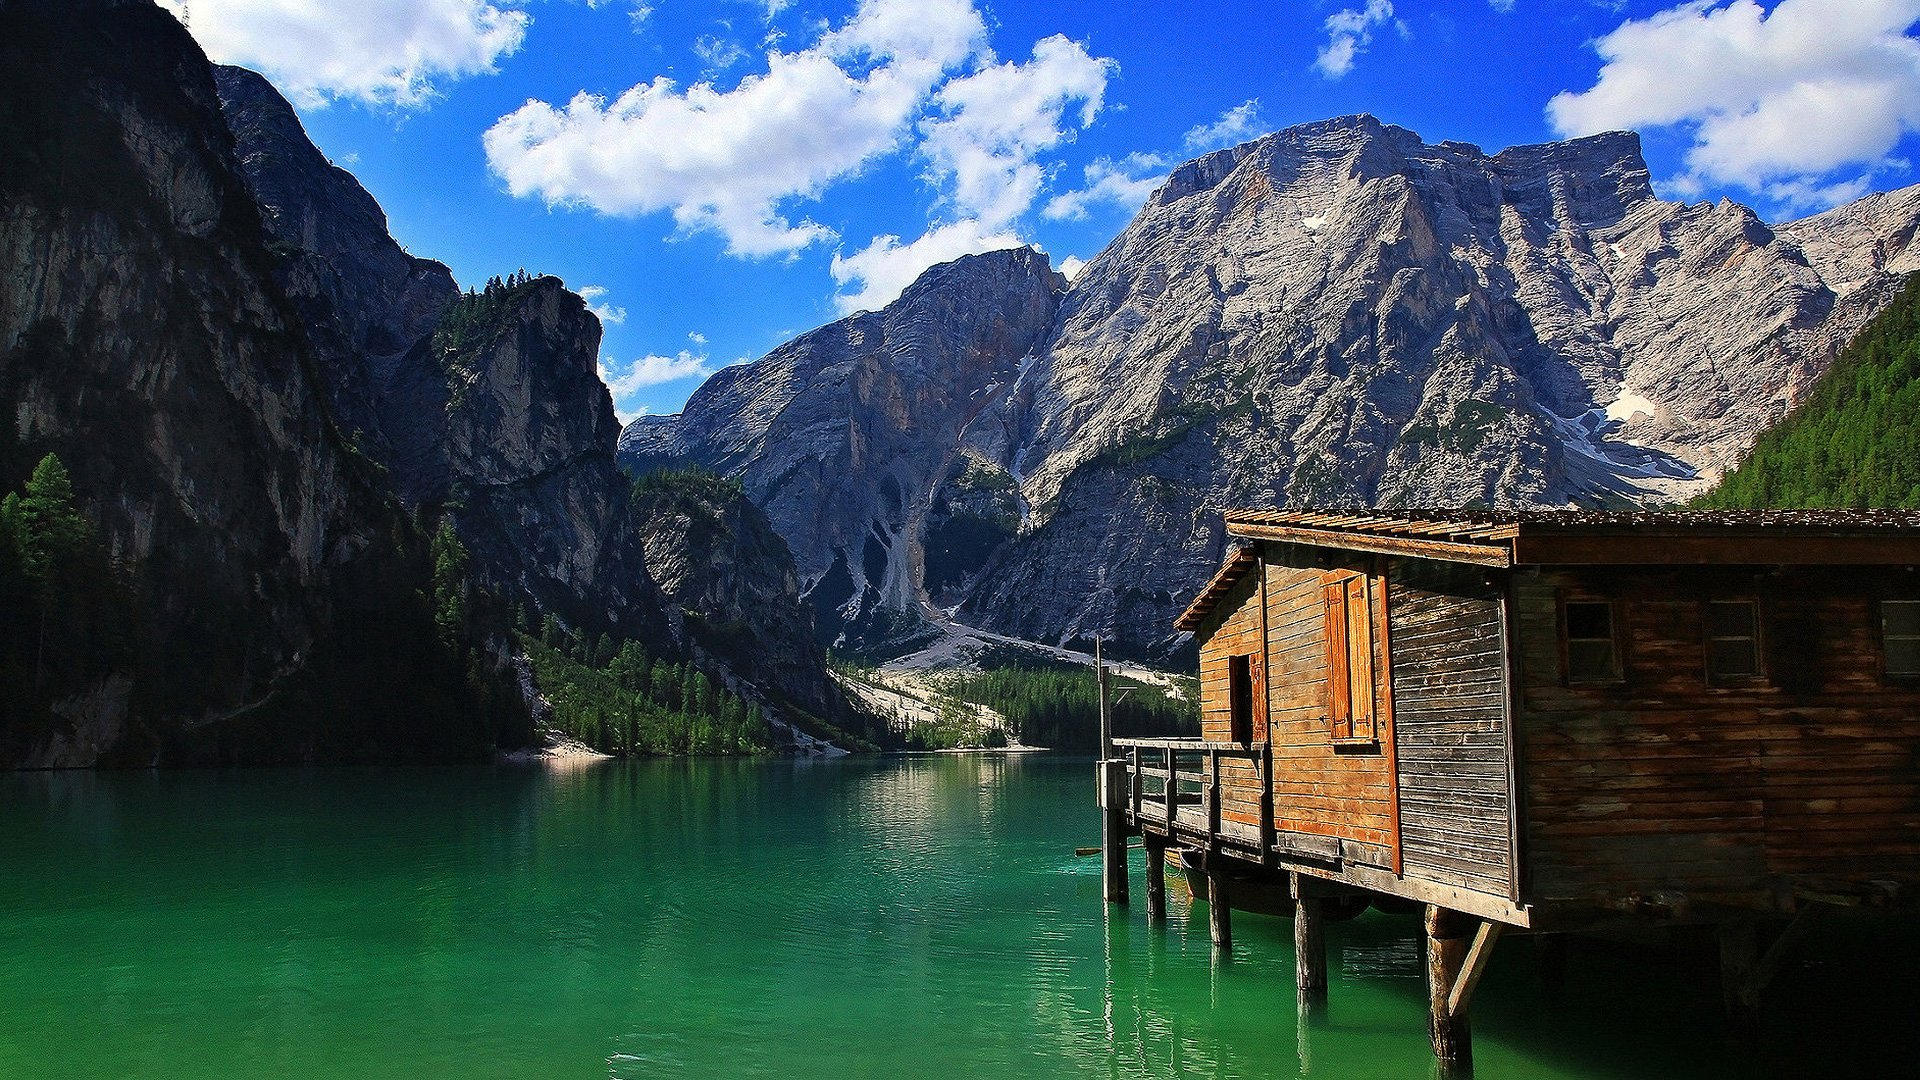 cabin on a mountain lake wallpaper 747350 stilt cabin lake mountain 1920x1080